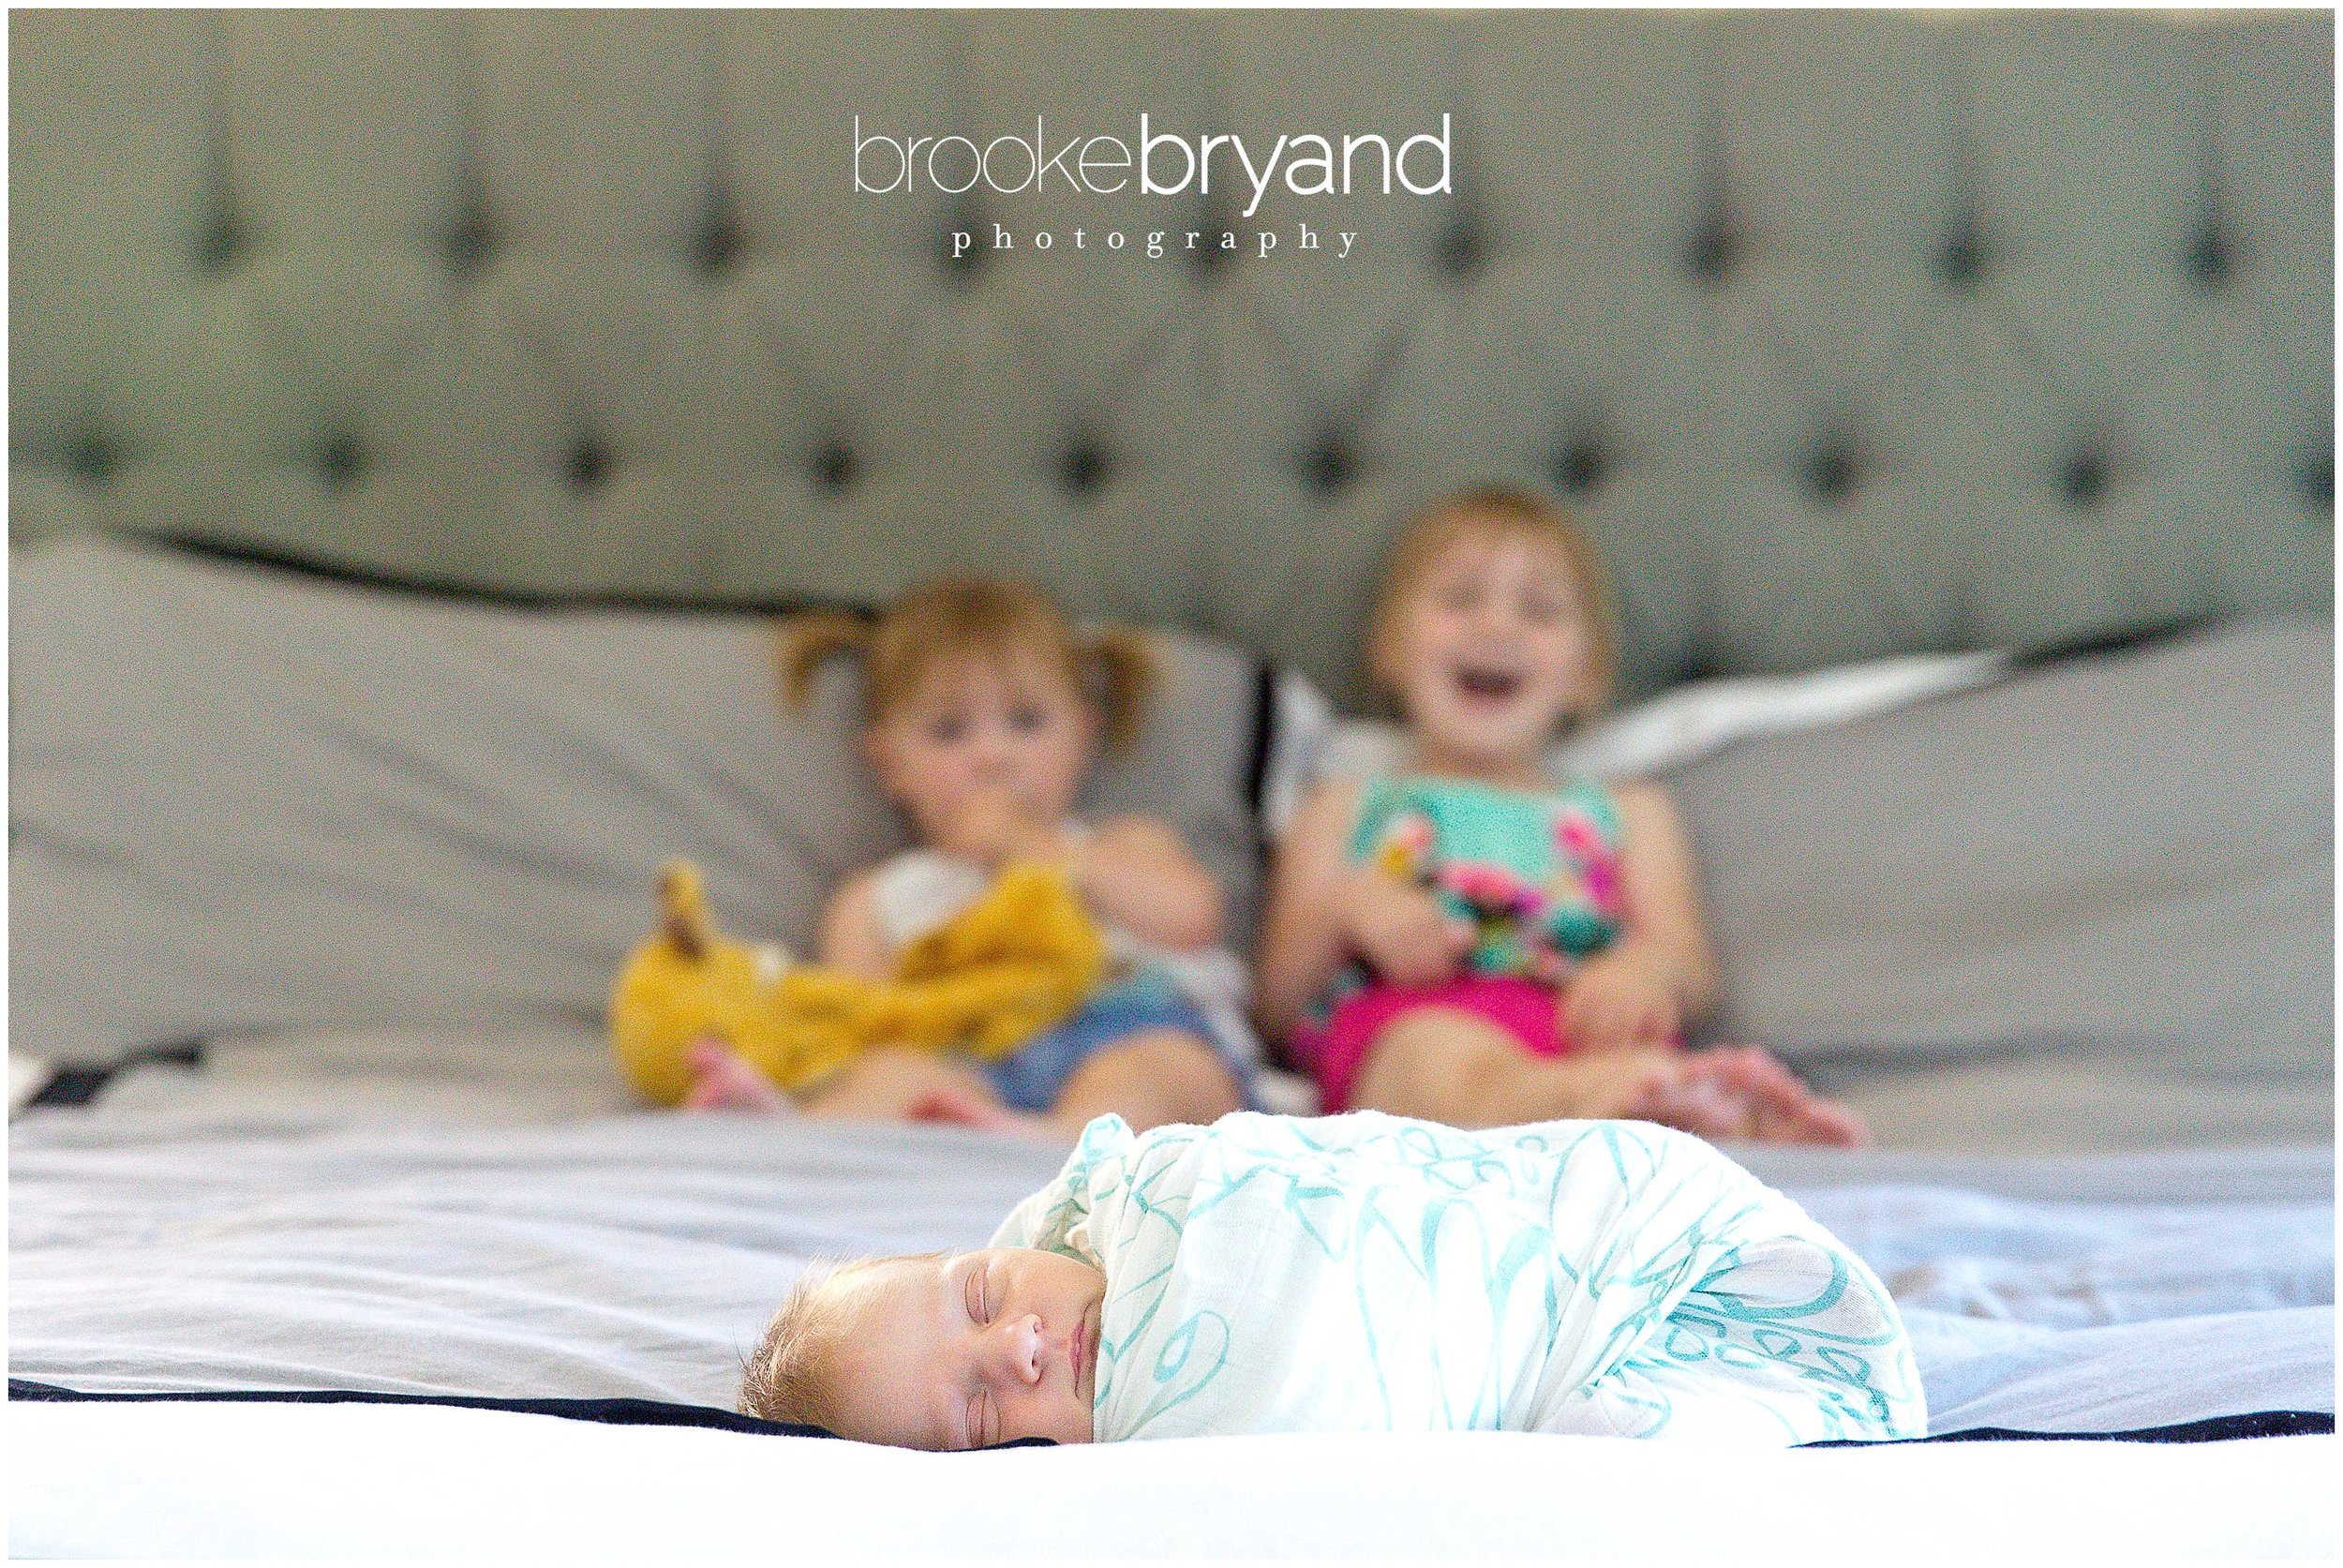 06.2014-James-BBP_1686-BrookeBryand_San-Francisco-Family-Photos-Brooke-Bryand-Photography.jpg